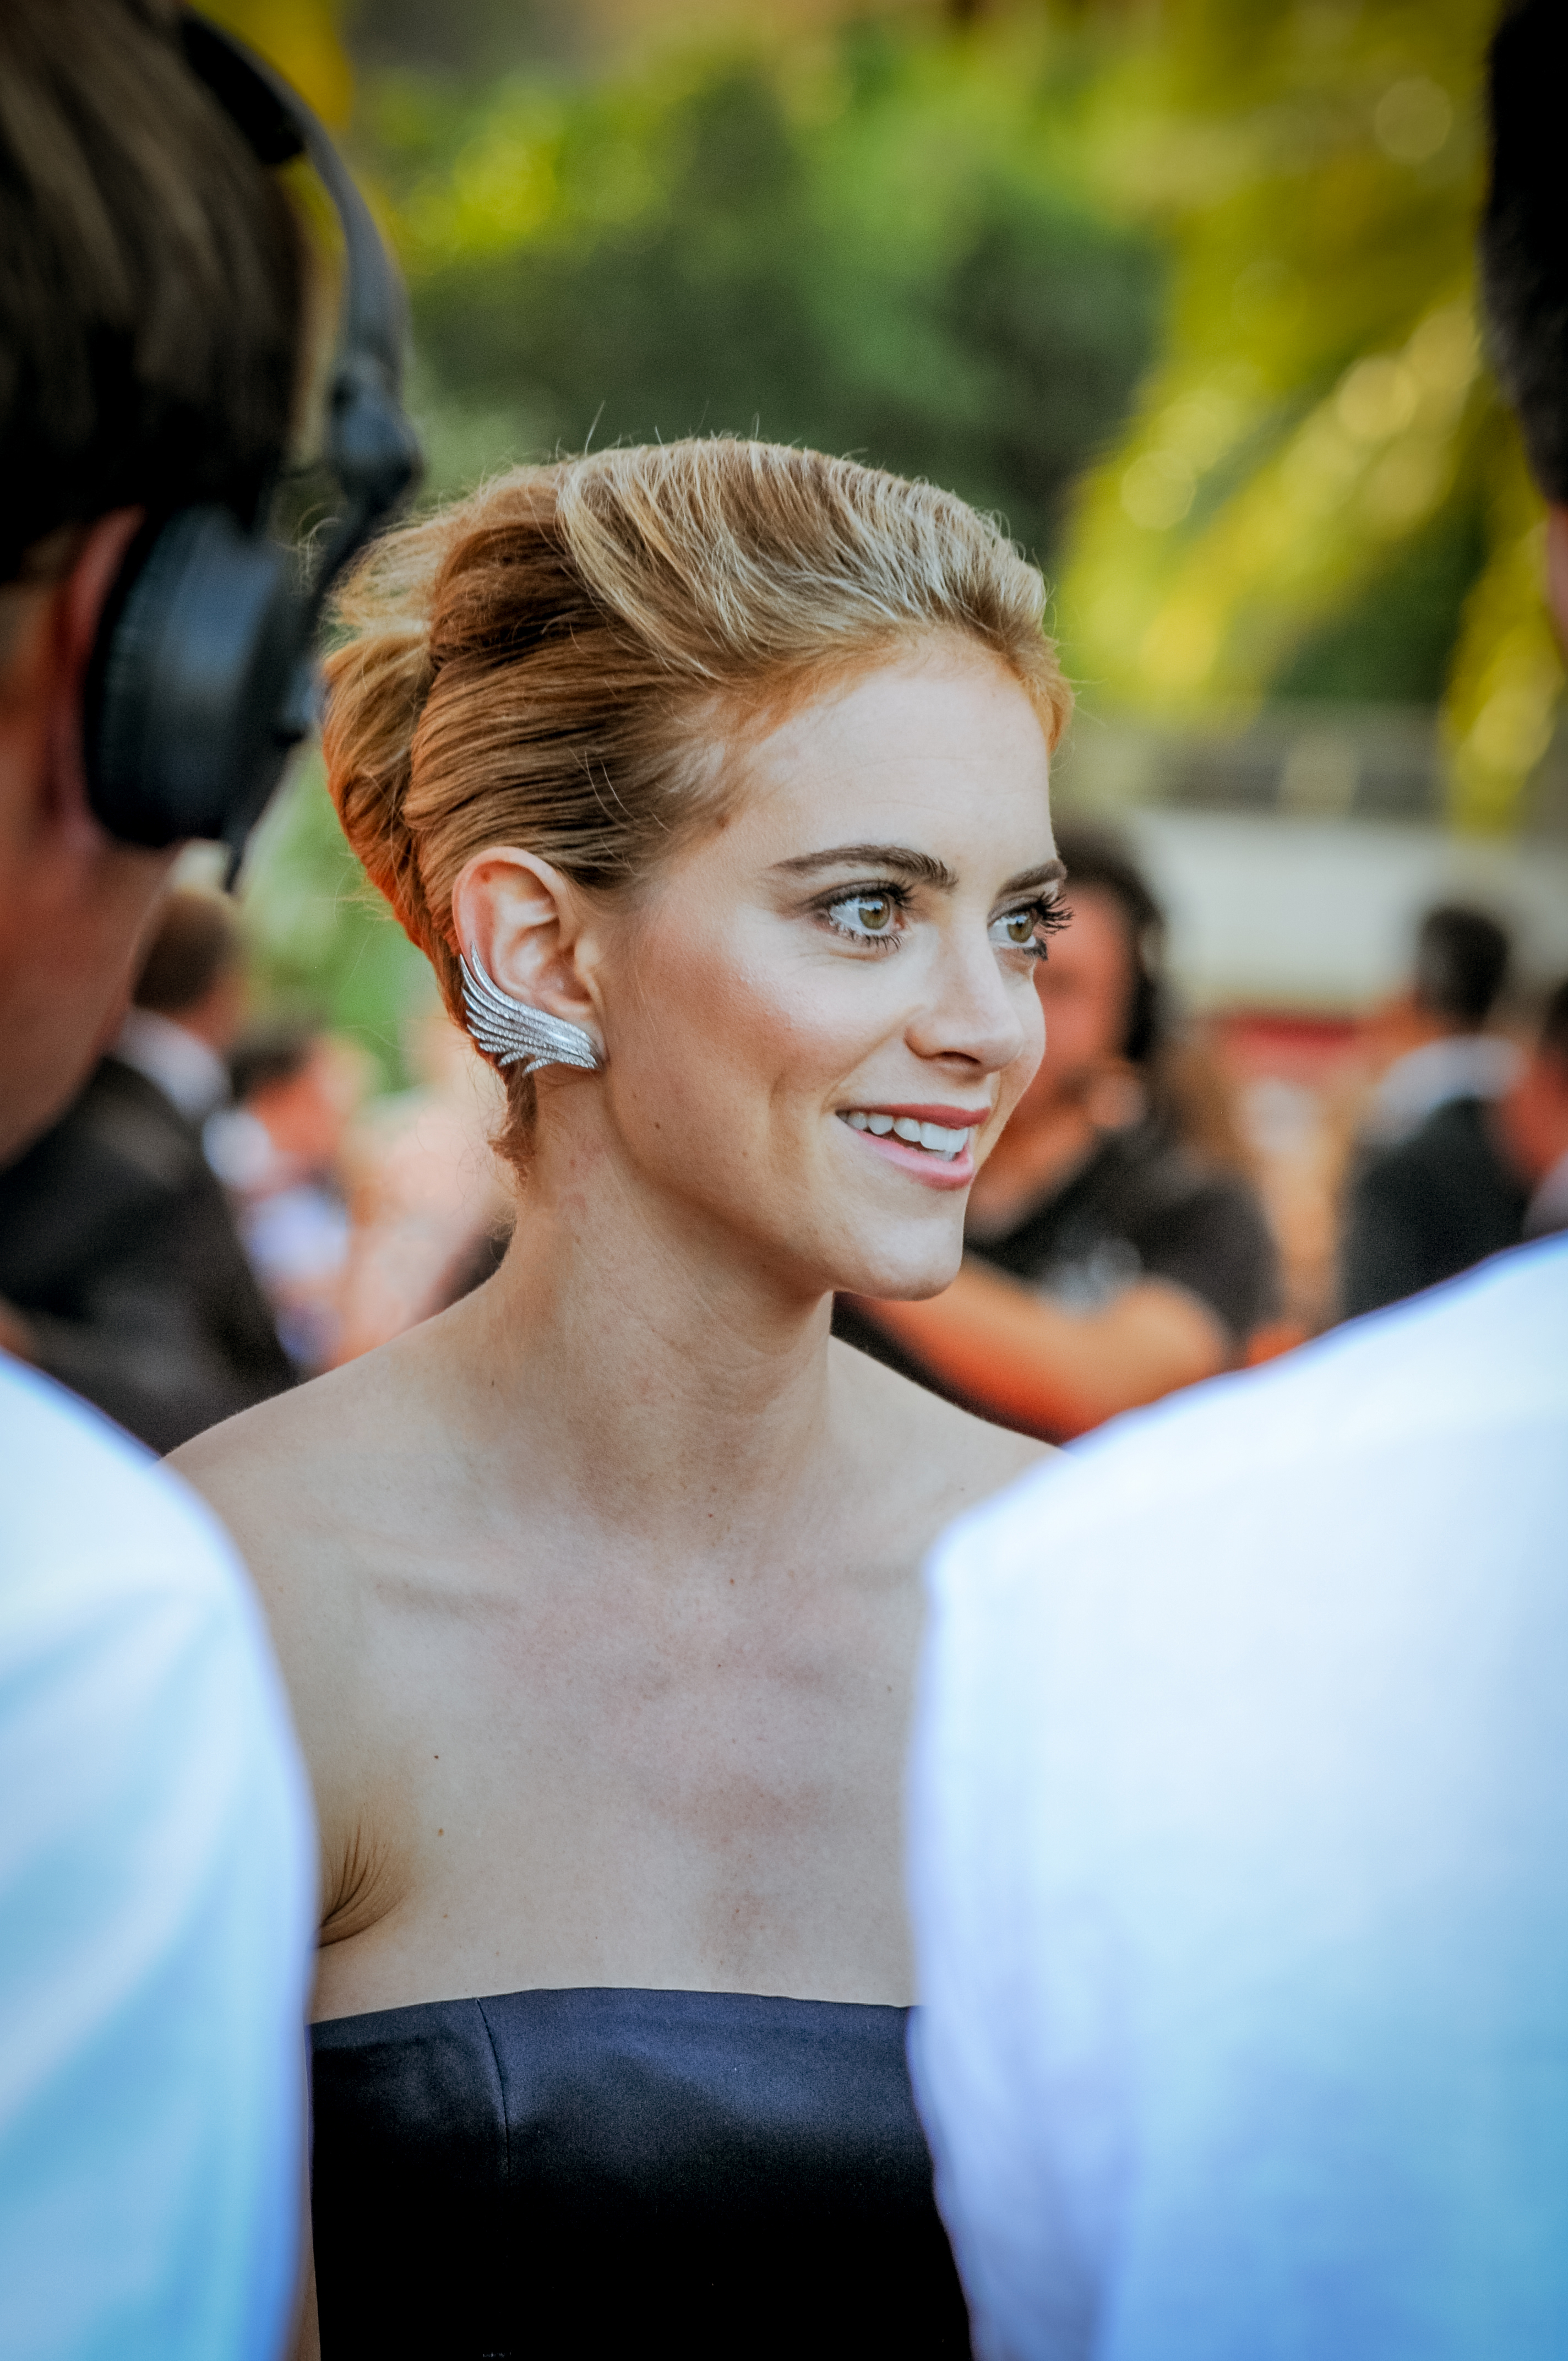 The 34-year old daughter of father John Wickersham and mother Amy Wickersham Emily Wickersham in 2018 photo. Emily Wickersham earned a  million dollar salary - leaving the net worth at 1.5 million in 2018